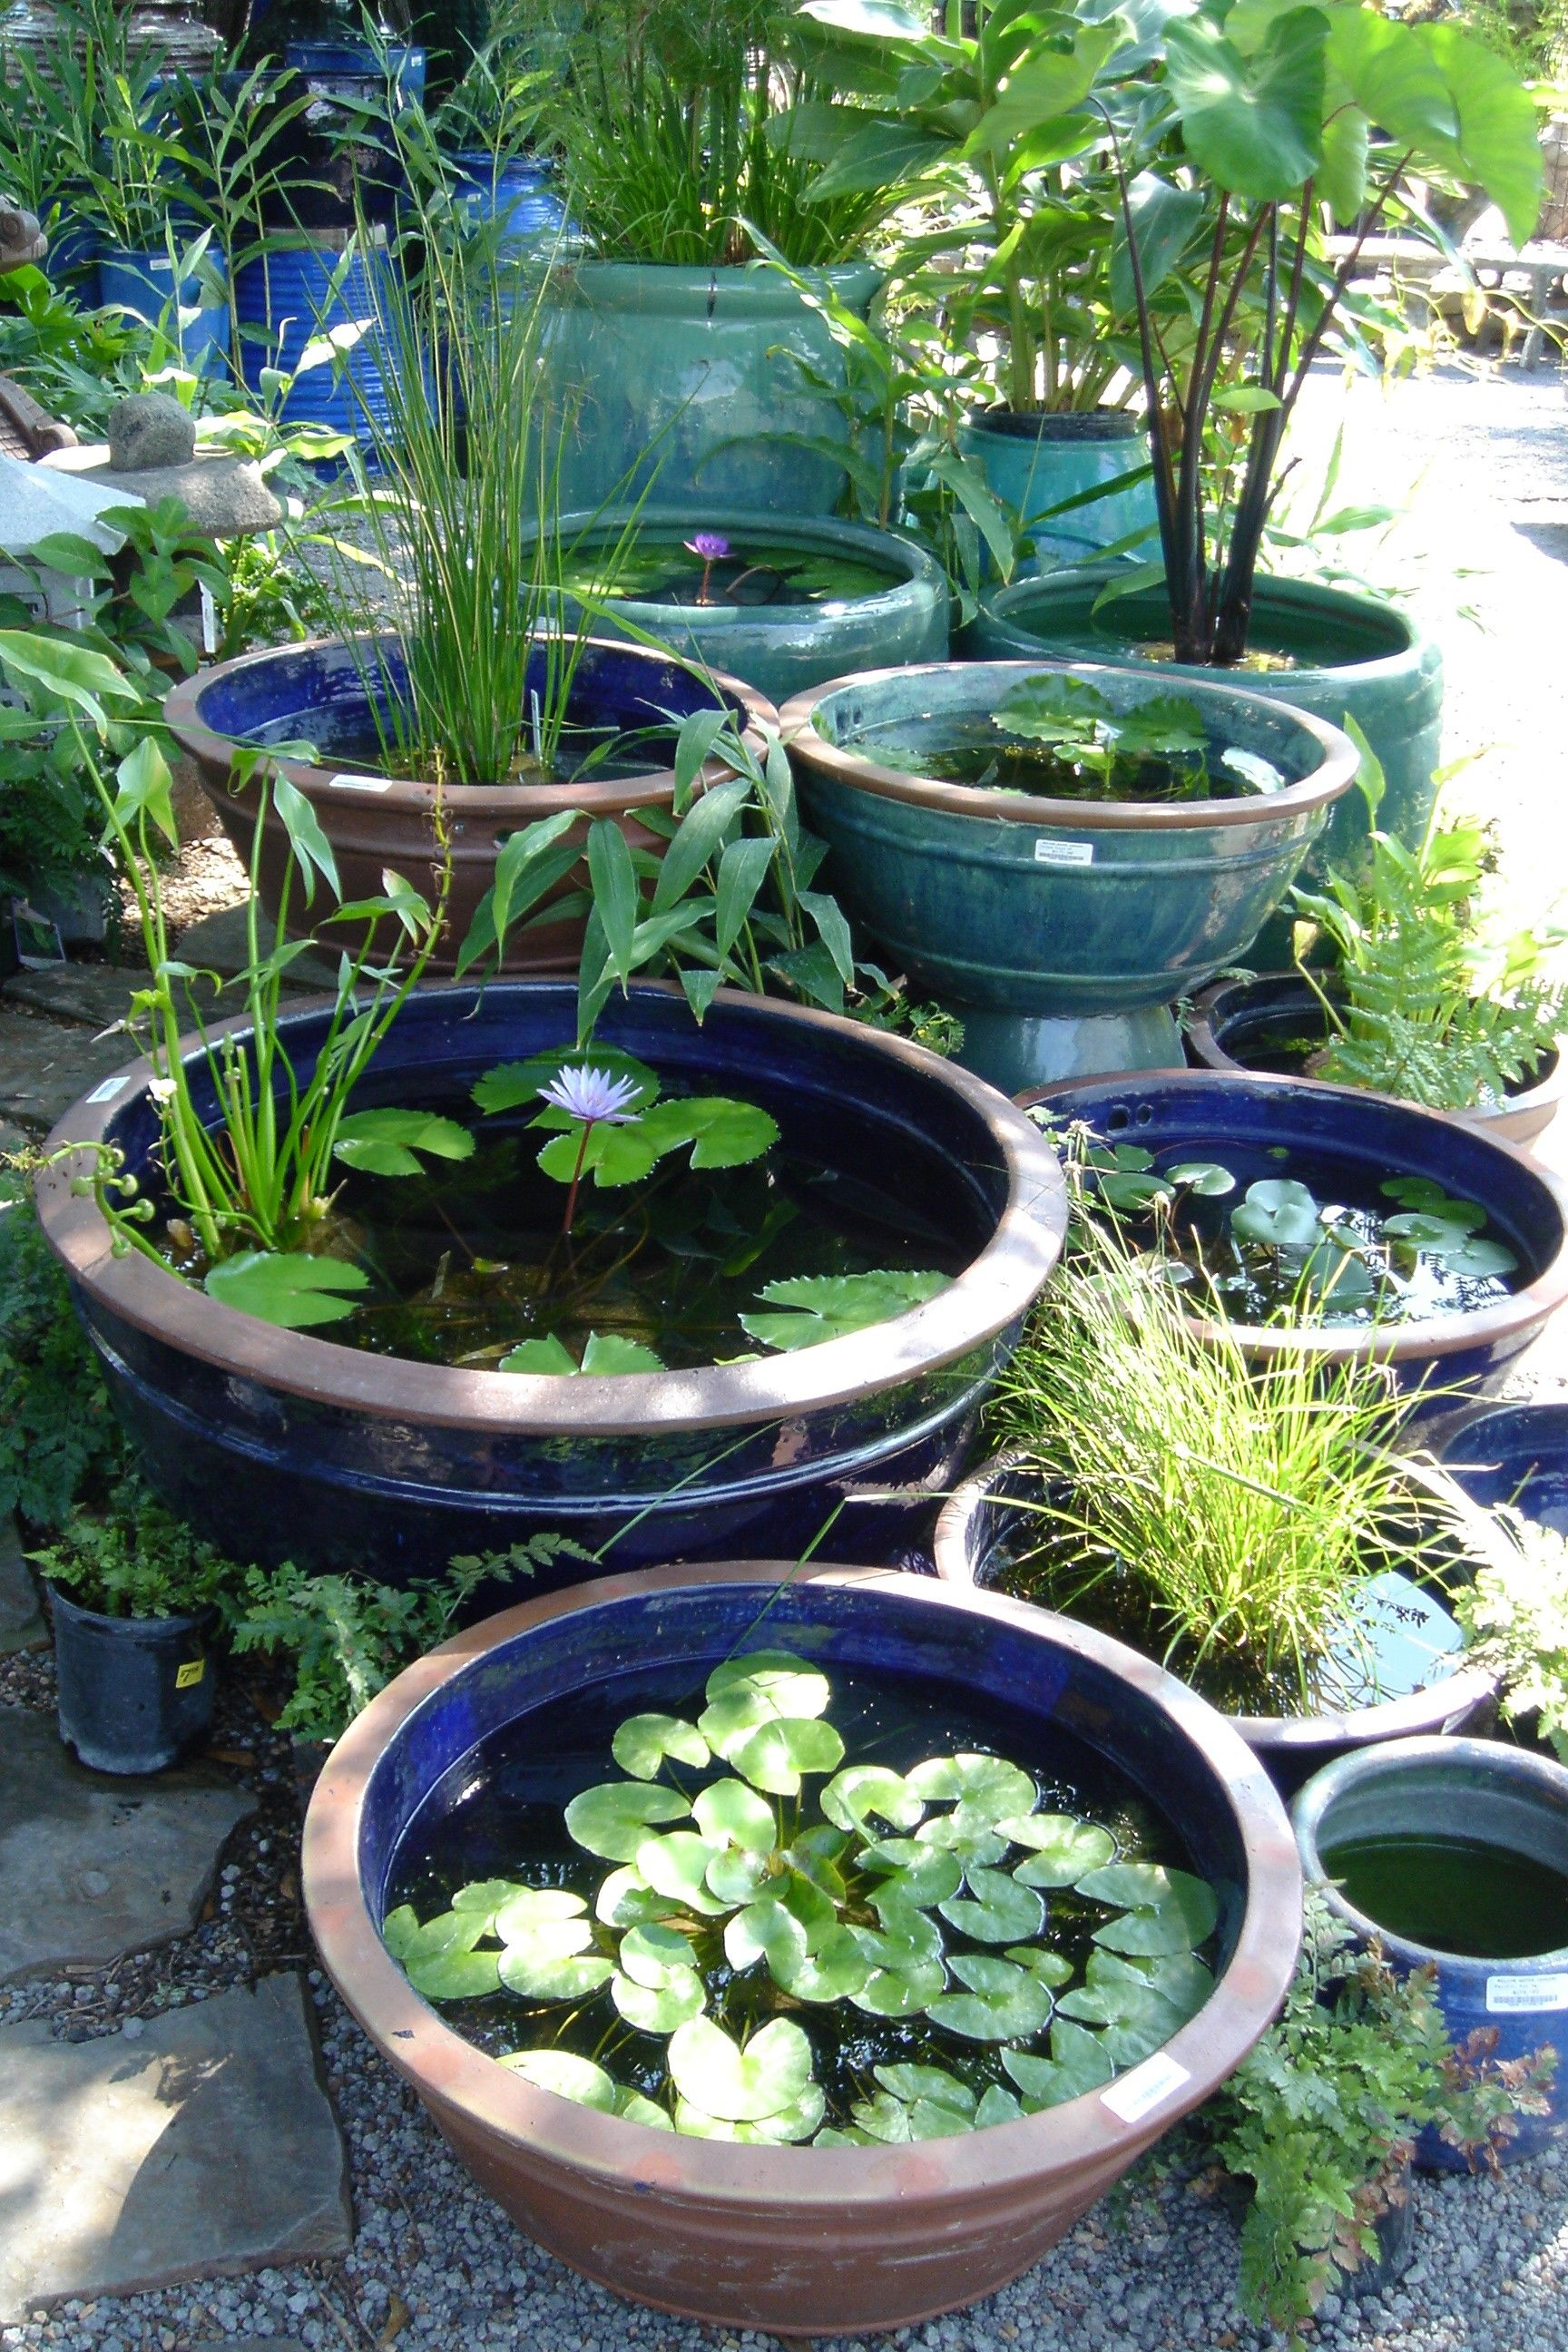 Pots Make Great Tub Gardens Small Water Gardens Container Water Gardens Water Features In The Garden